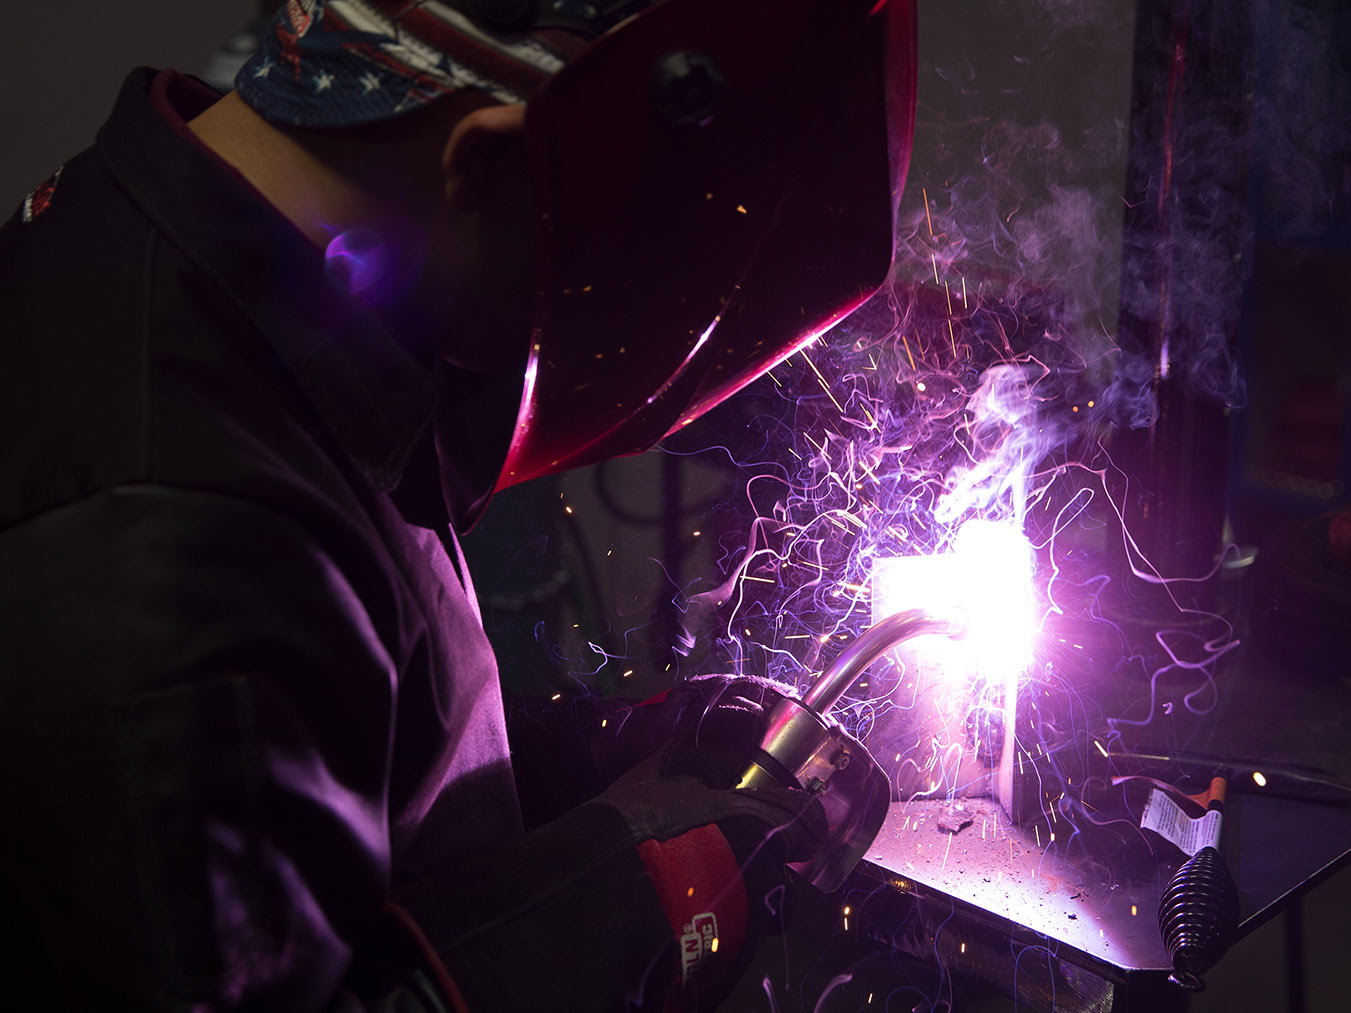 Over the shoulder photo of a welding student welding creating a purple flame